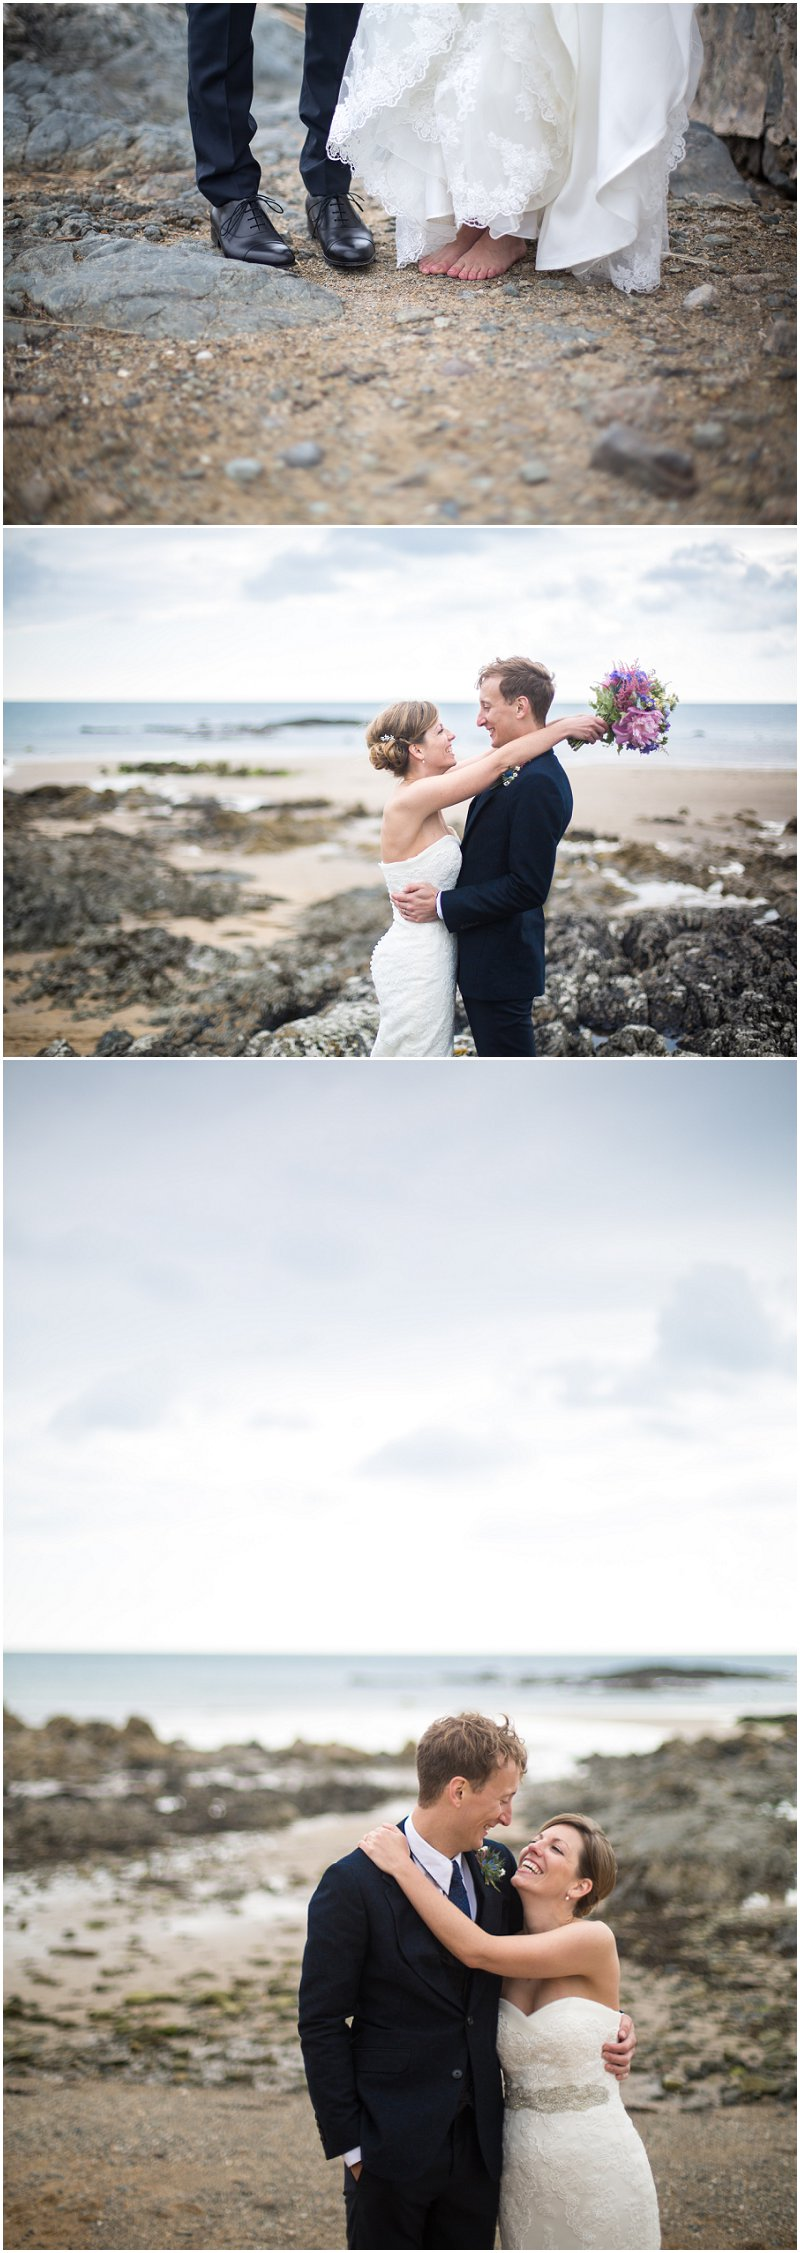 Beach Wedding Photography Anglesey Wales Wedding Photographer